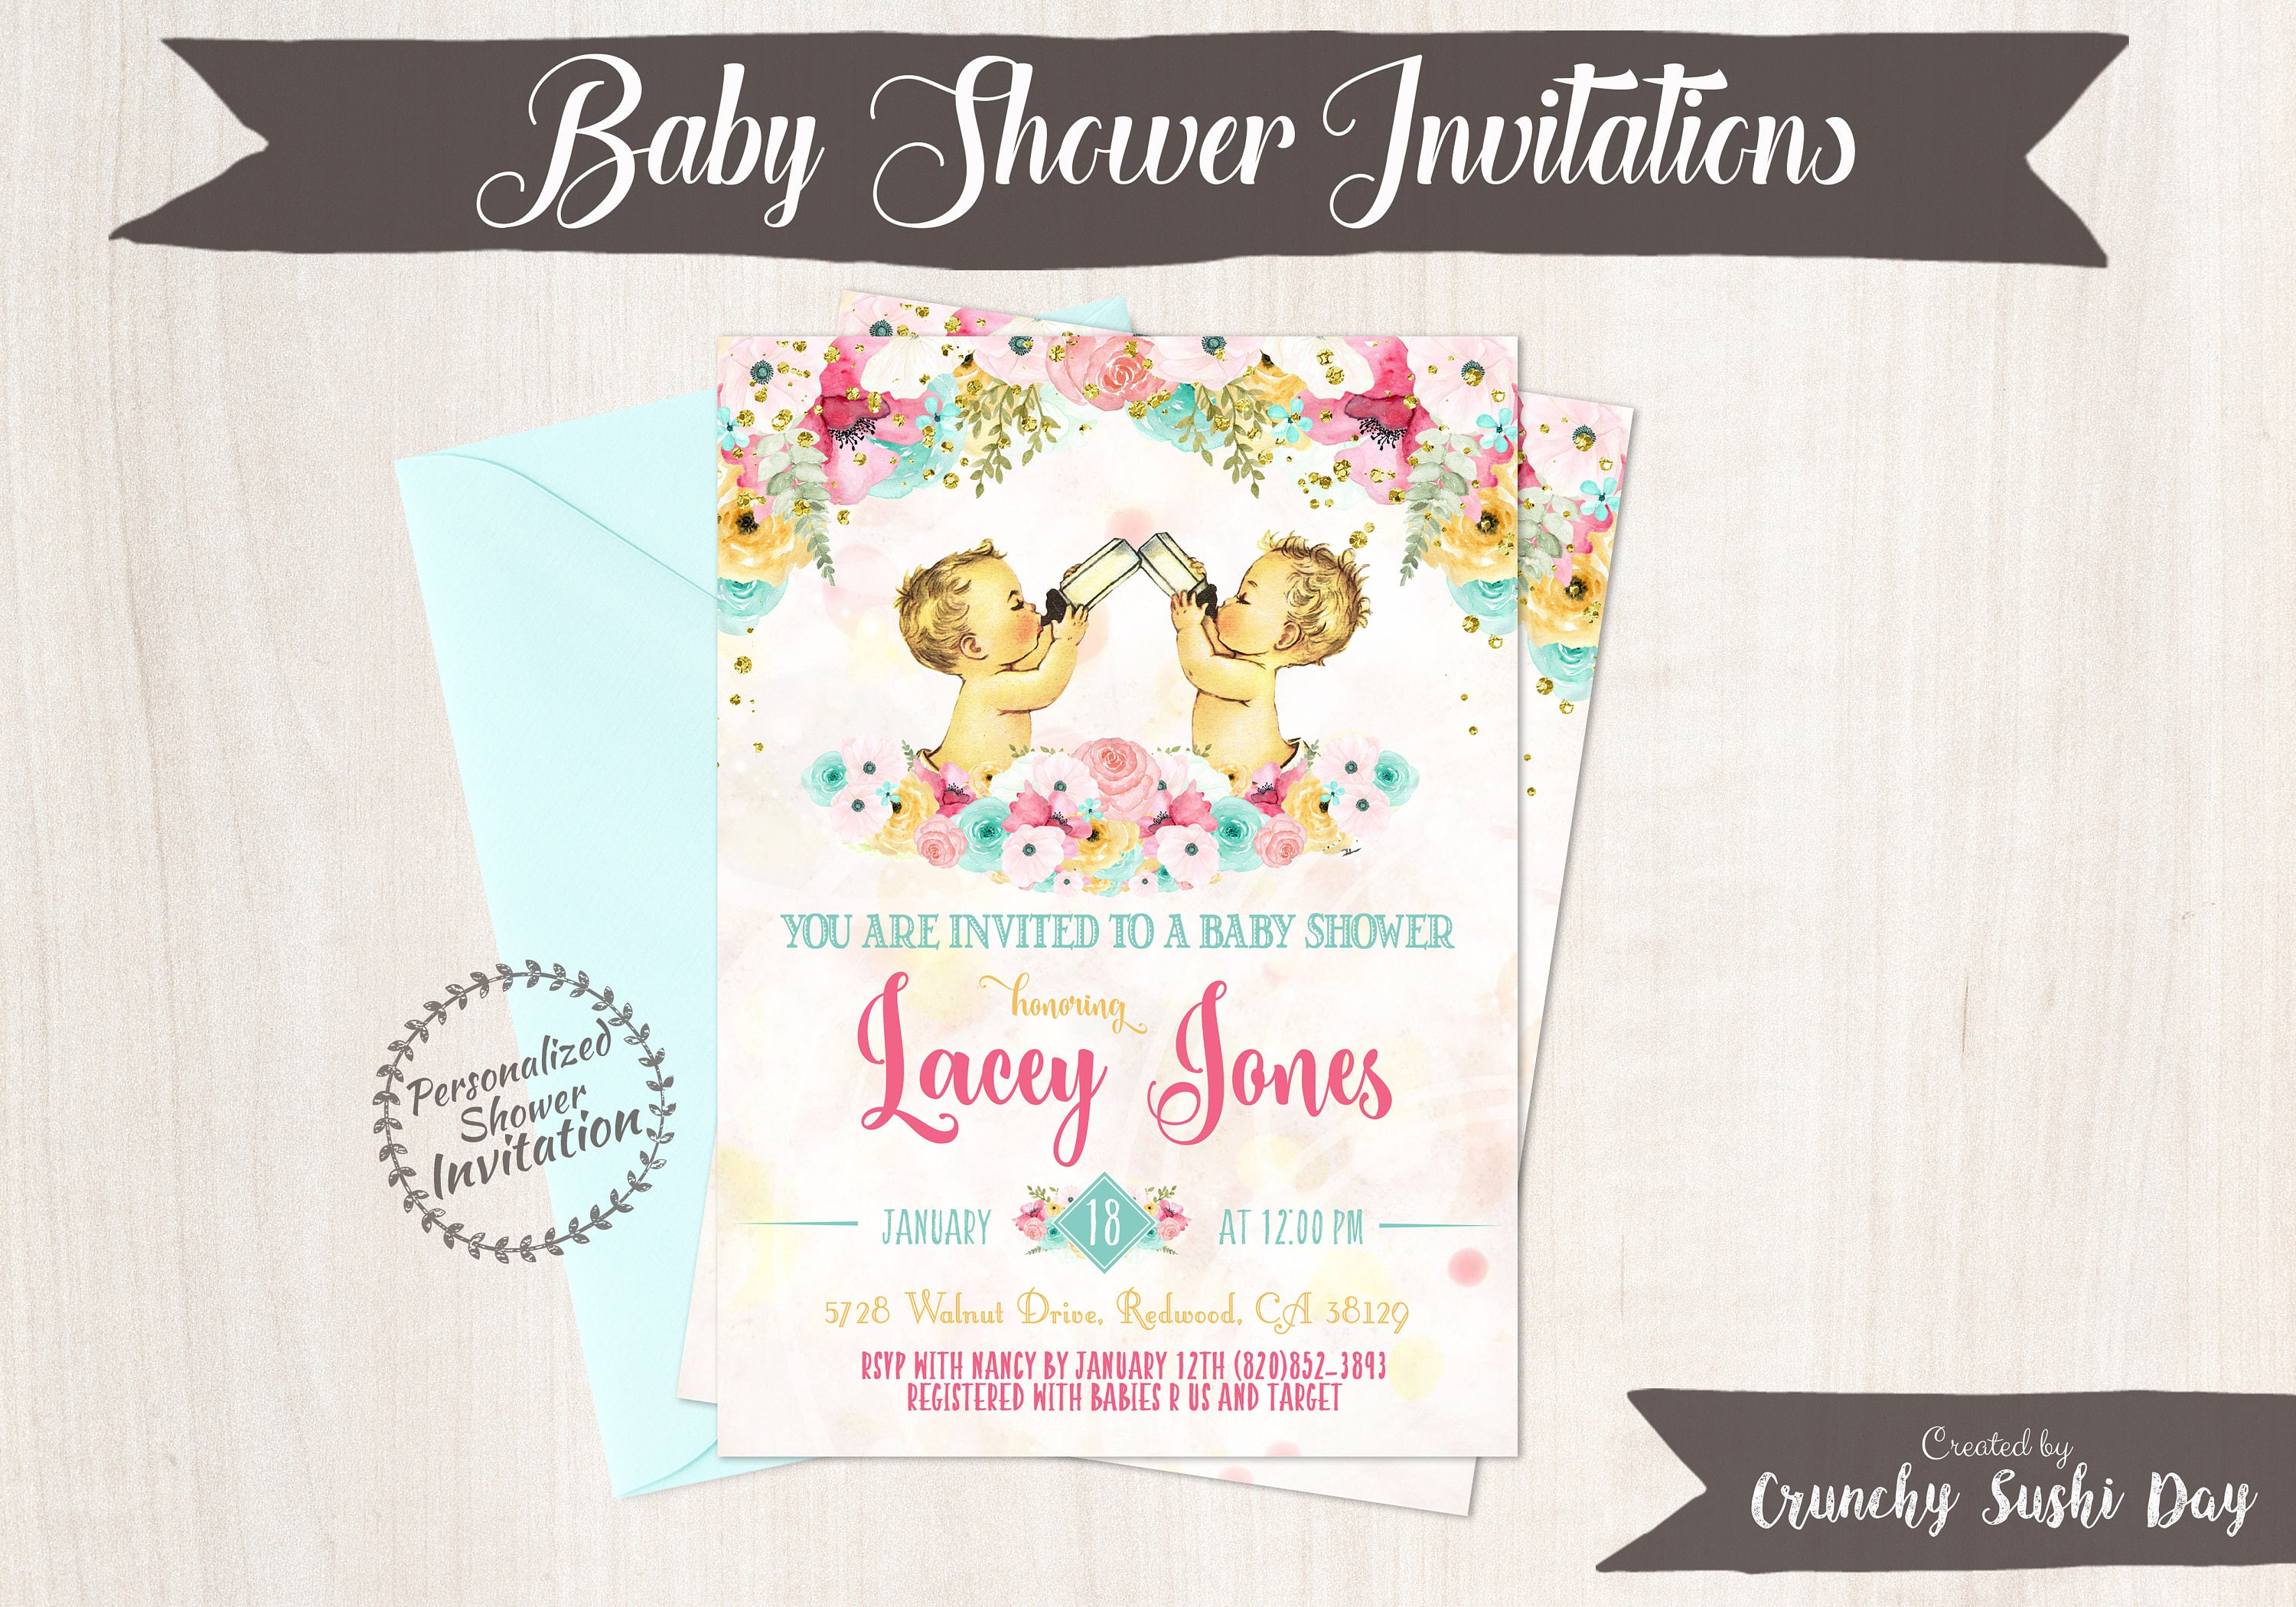 Twin boys vintage baby boy baby shower invitations baby shower twin boys vintage baby boy baby shower invitations baby shower invitation printable invitations baby boy teal pink floral 001 filmwisefo